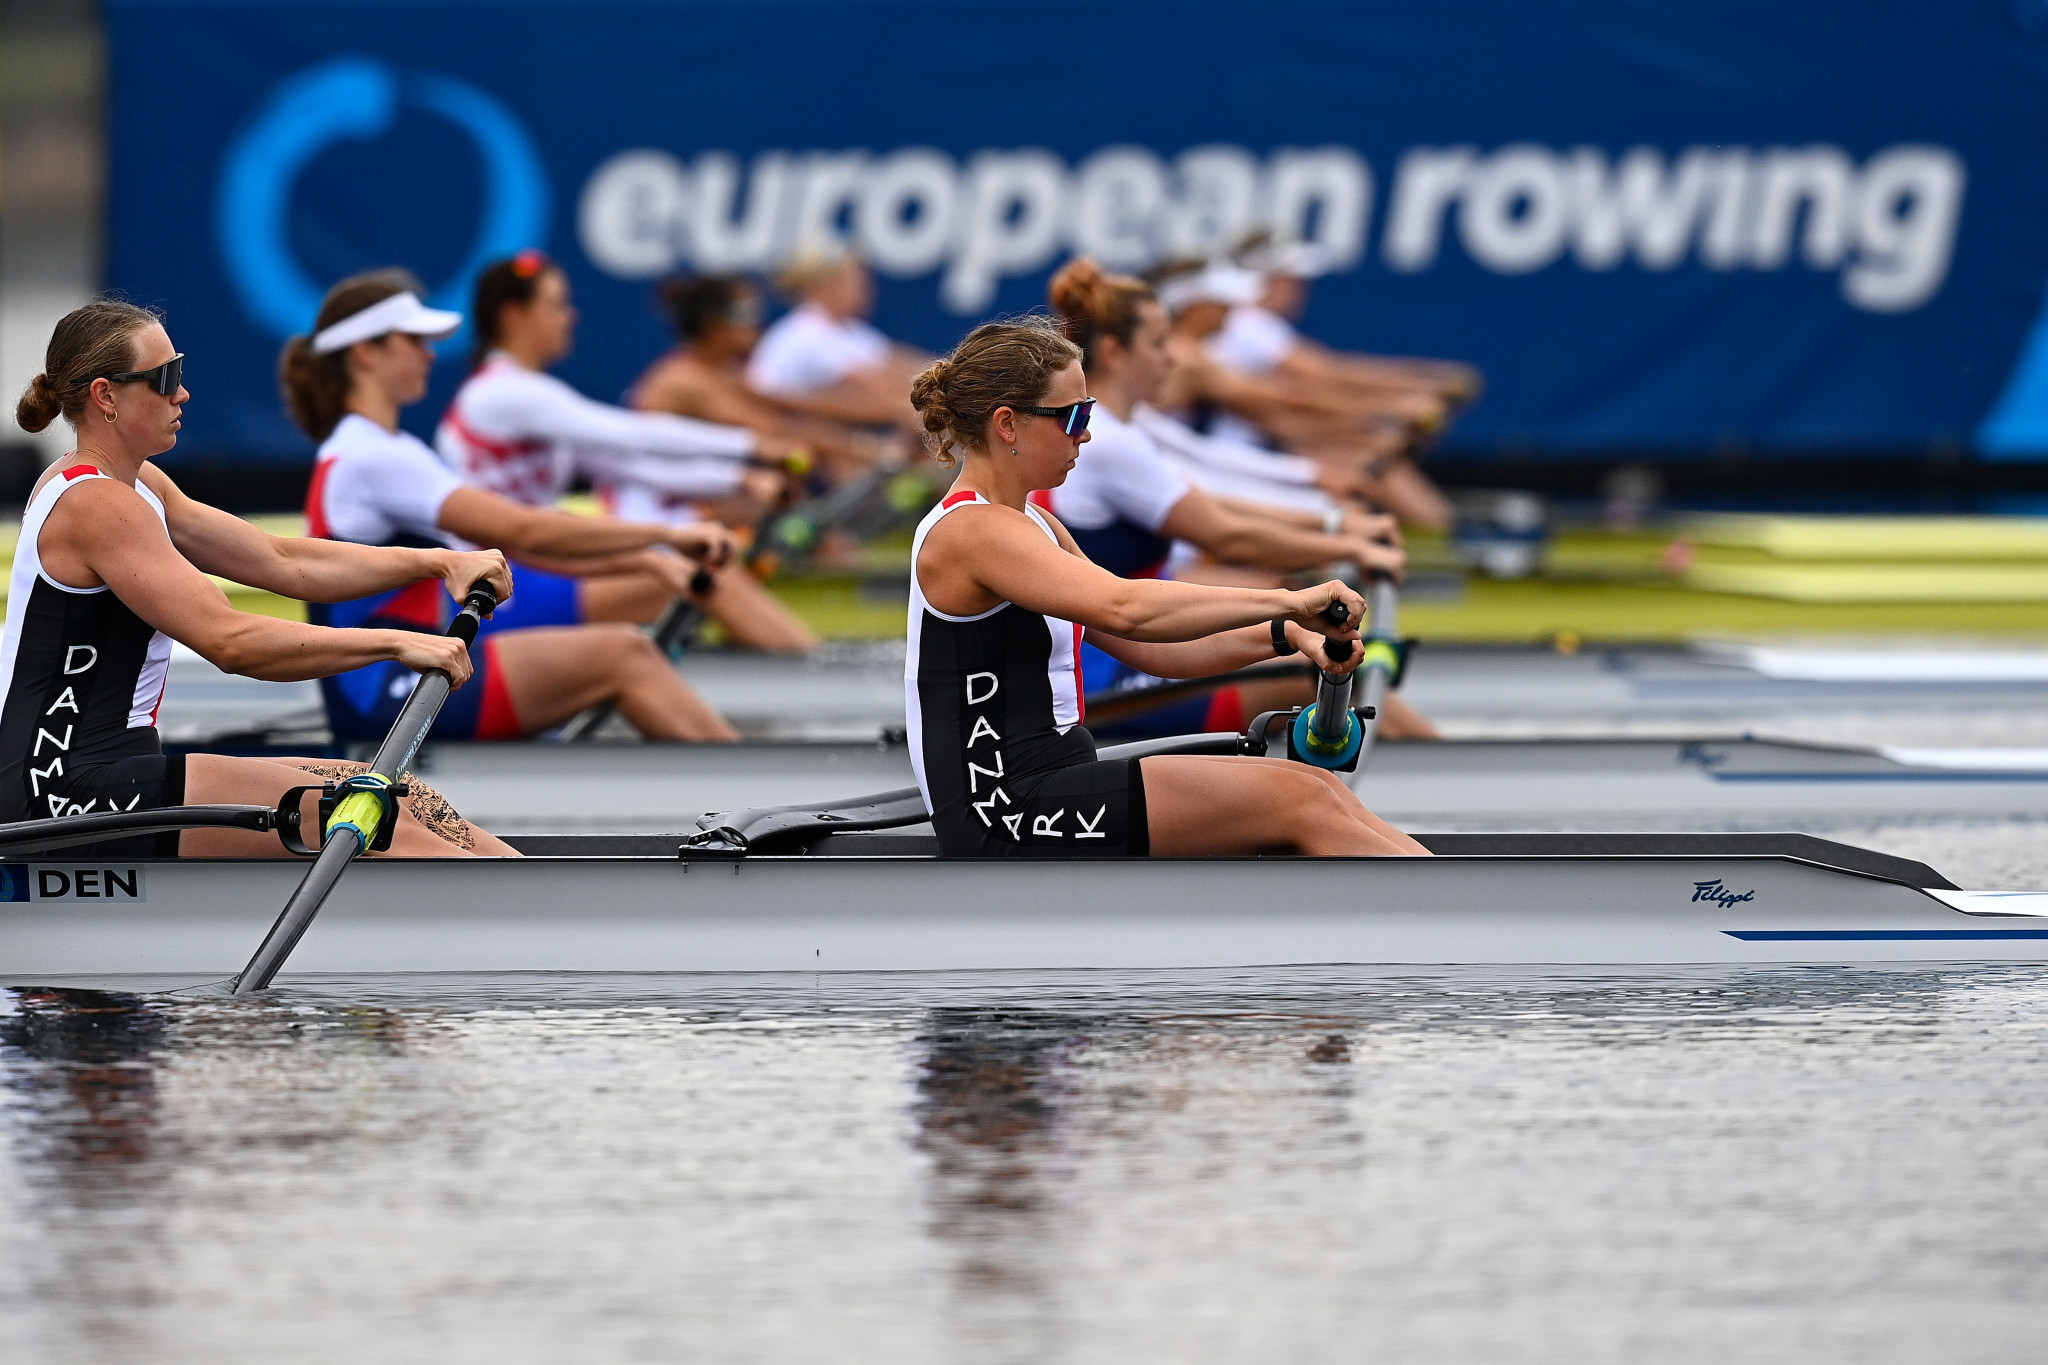 Twins Ivana and Josipa Jurkovic of Croatia claimed a dominant victory on home water in the women's pair at the first Rowing World Cup regatta in Zagreb ©Getty Images